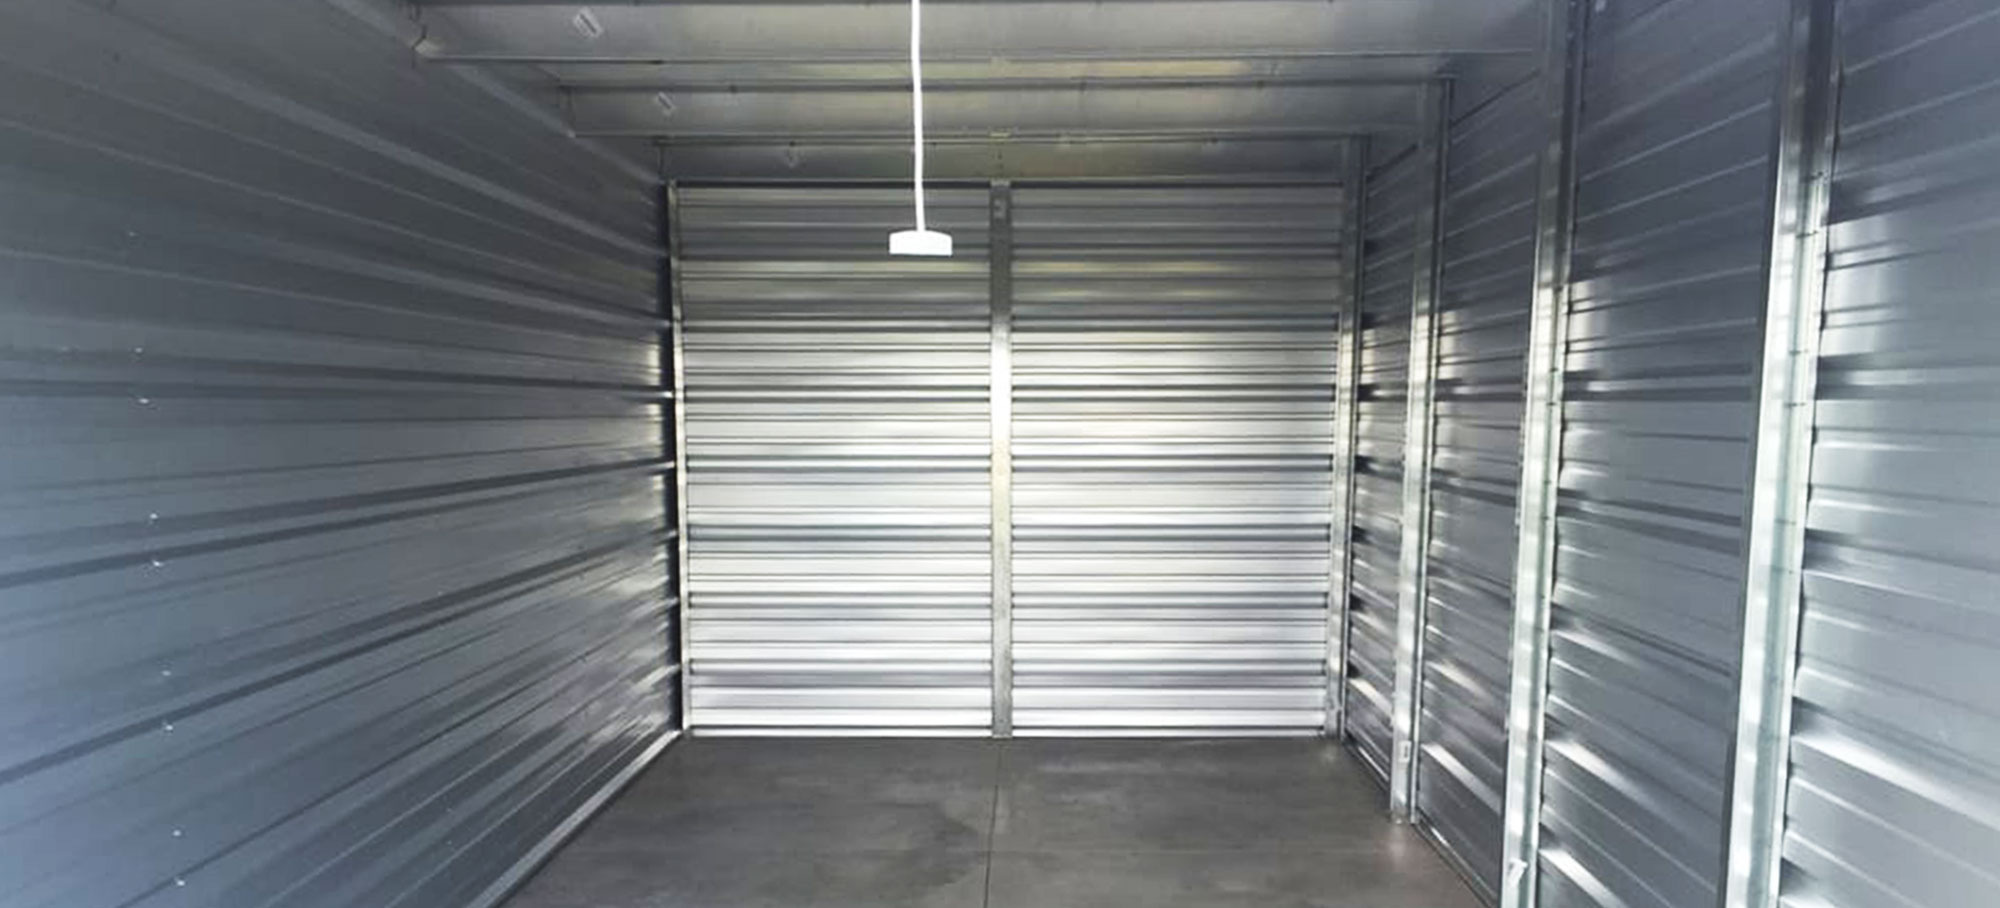 Interior of a self-storage unit at Randolph Storage featuring clean steel side walls, a well-maintained concrete floor, and easy-access overhead door